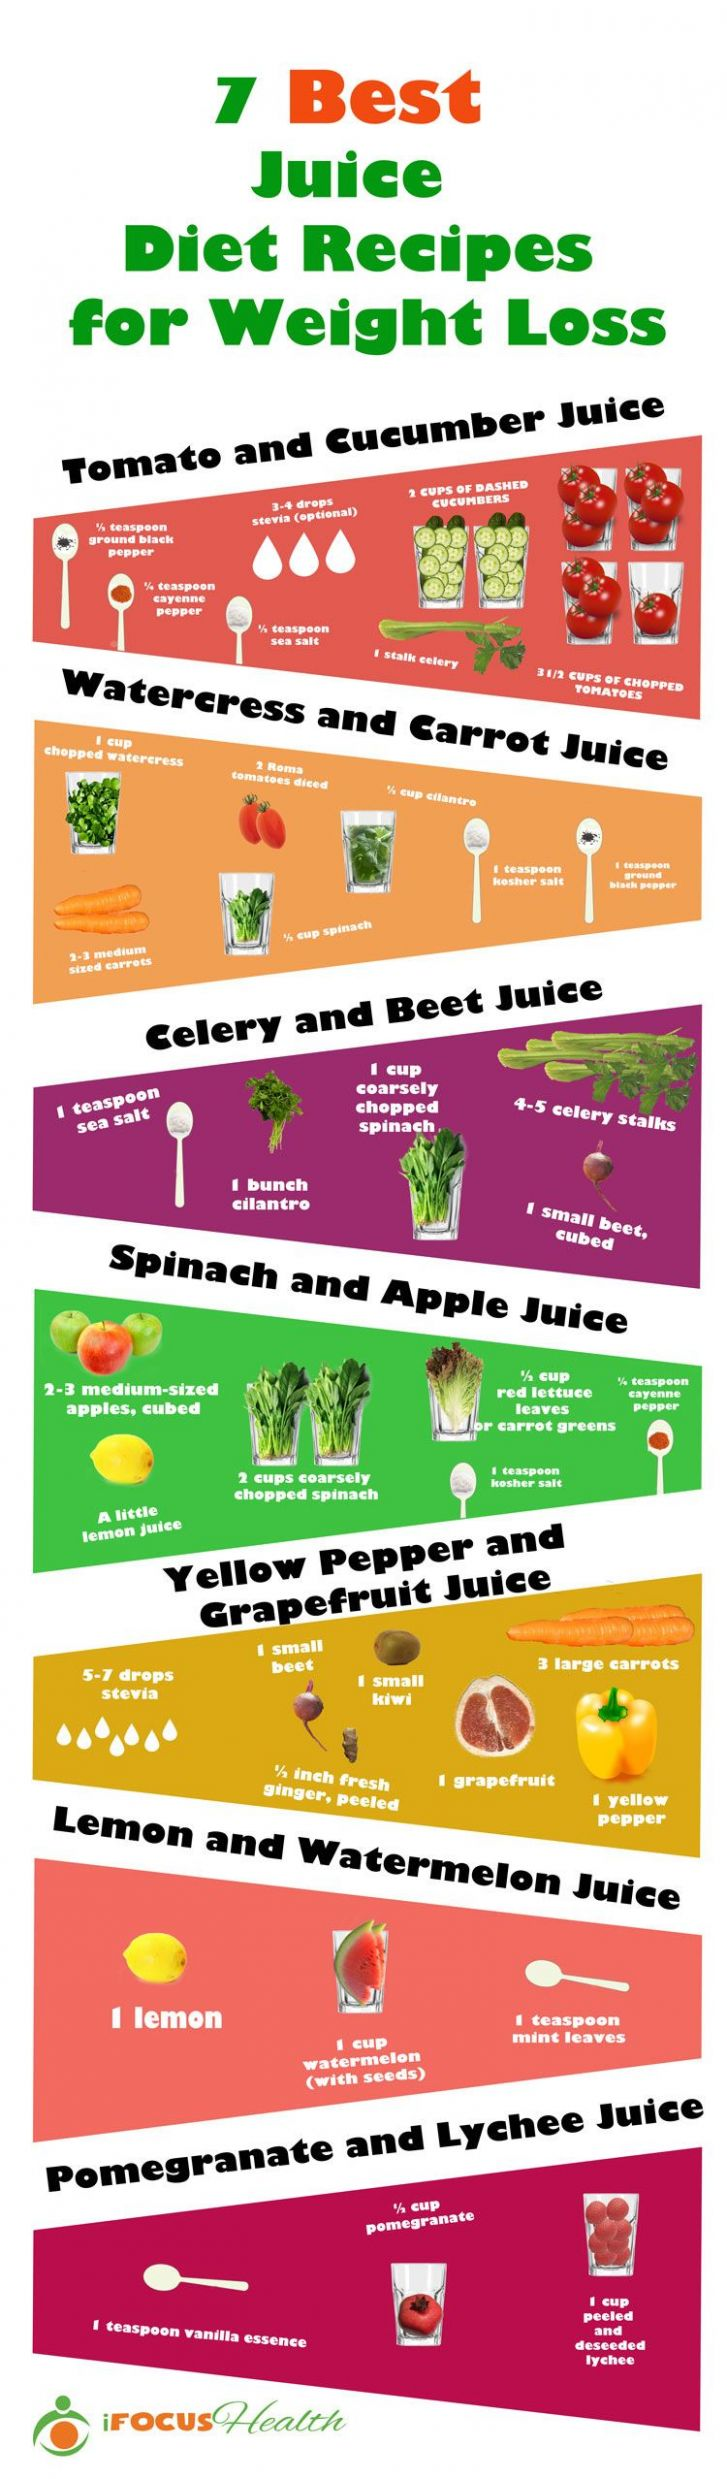 11 Simple Juicing Recipes for Weight Loss (Infographic) - Simple Juicer Recipes